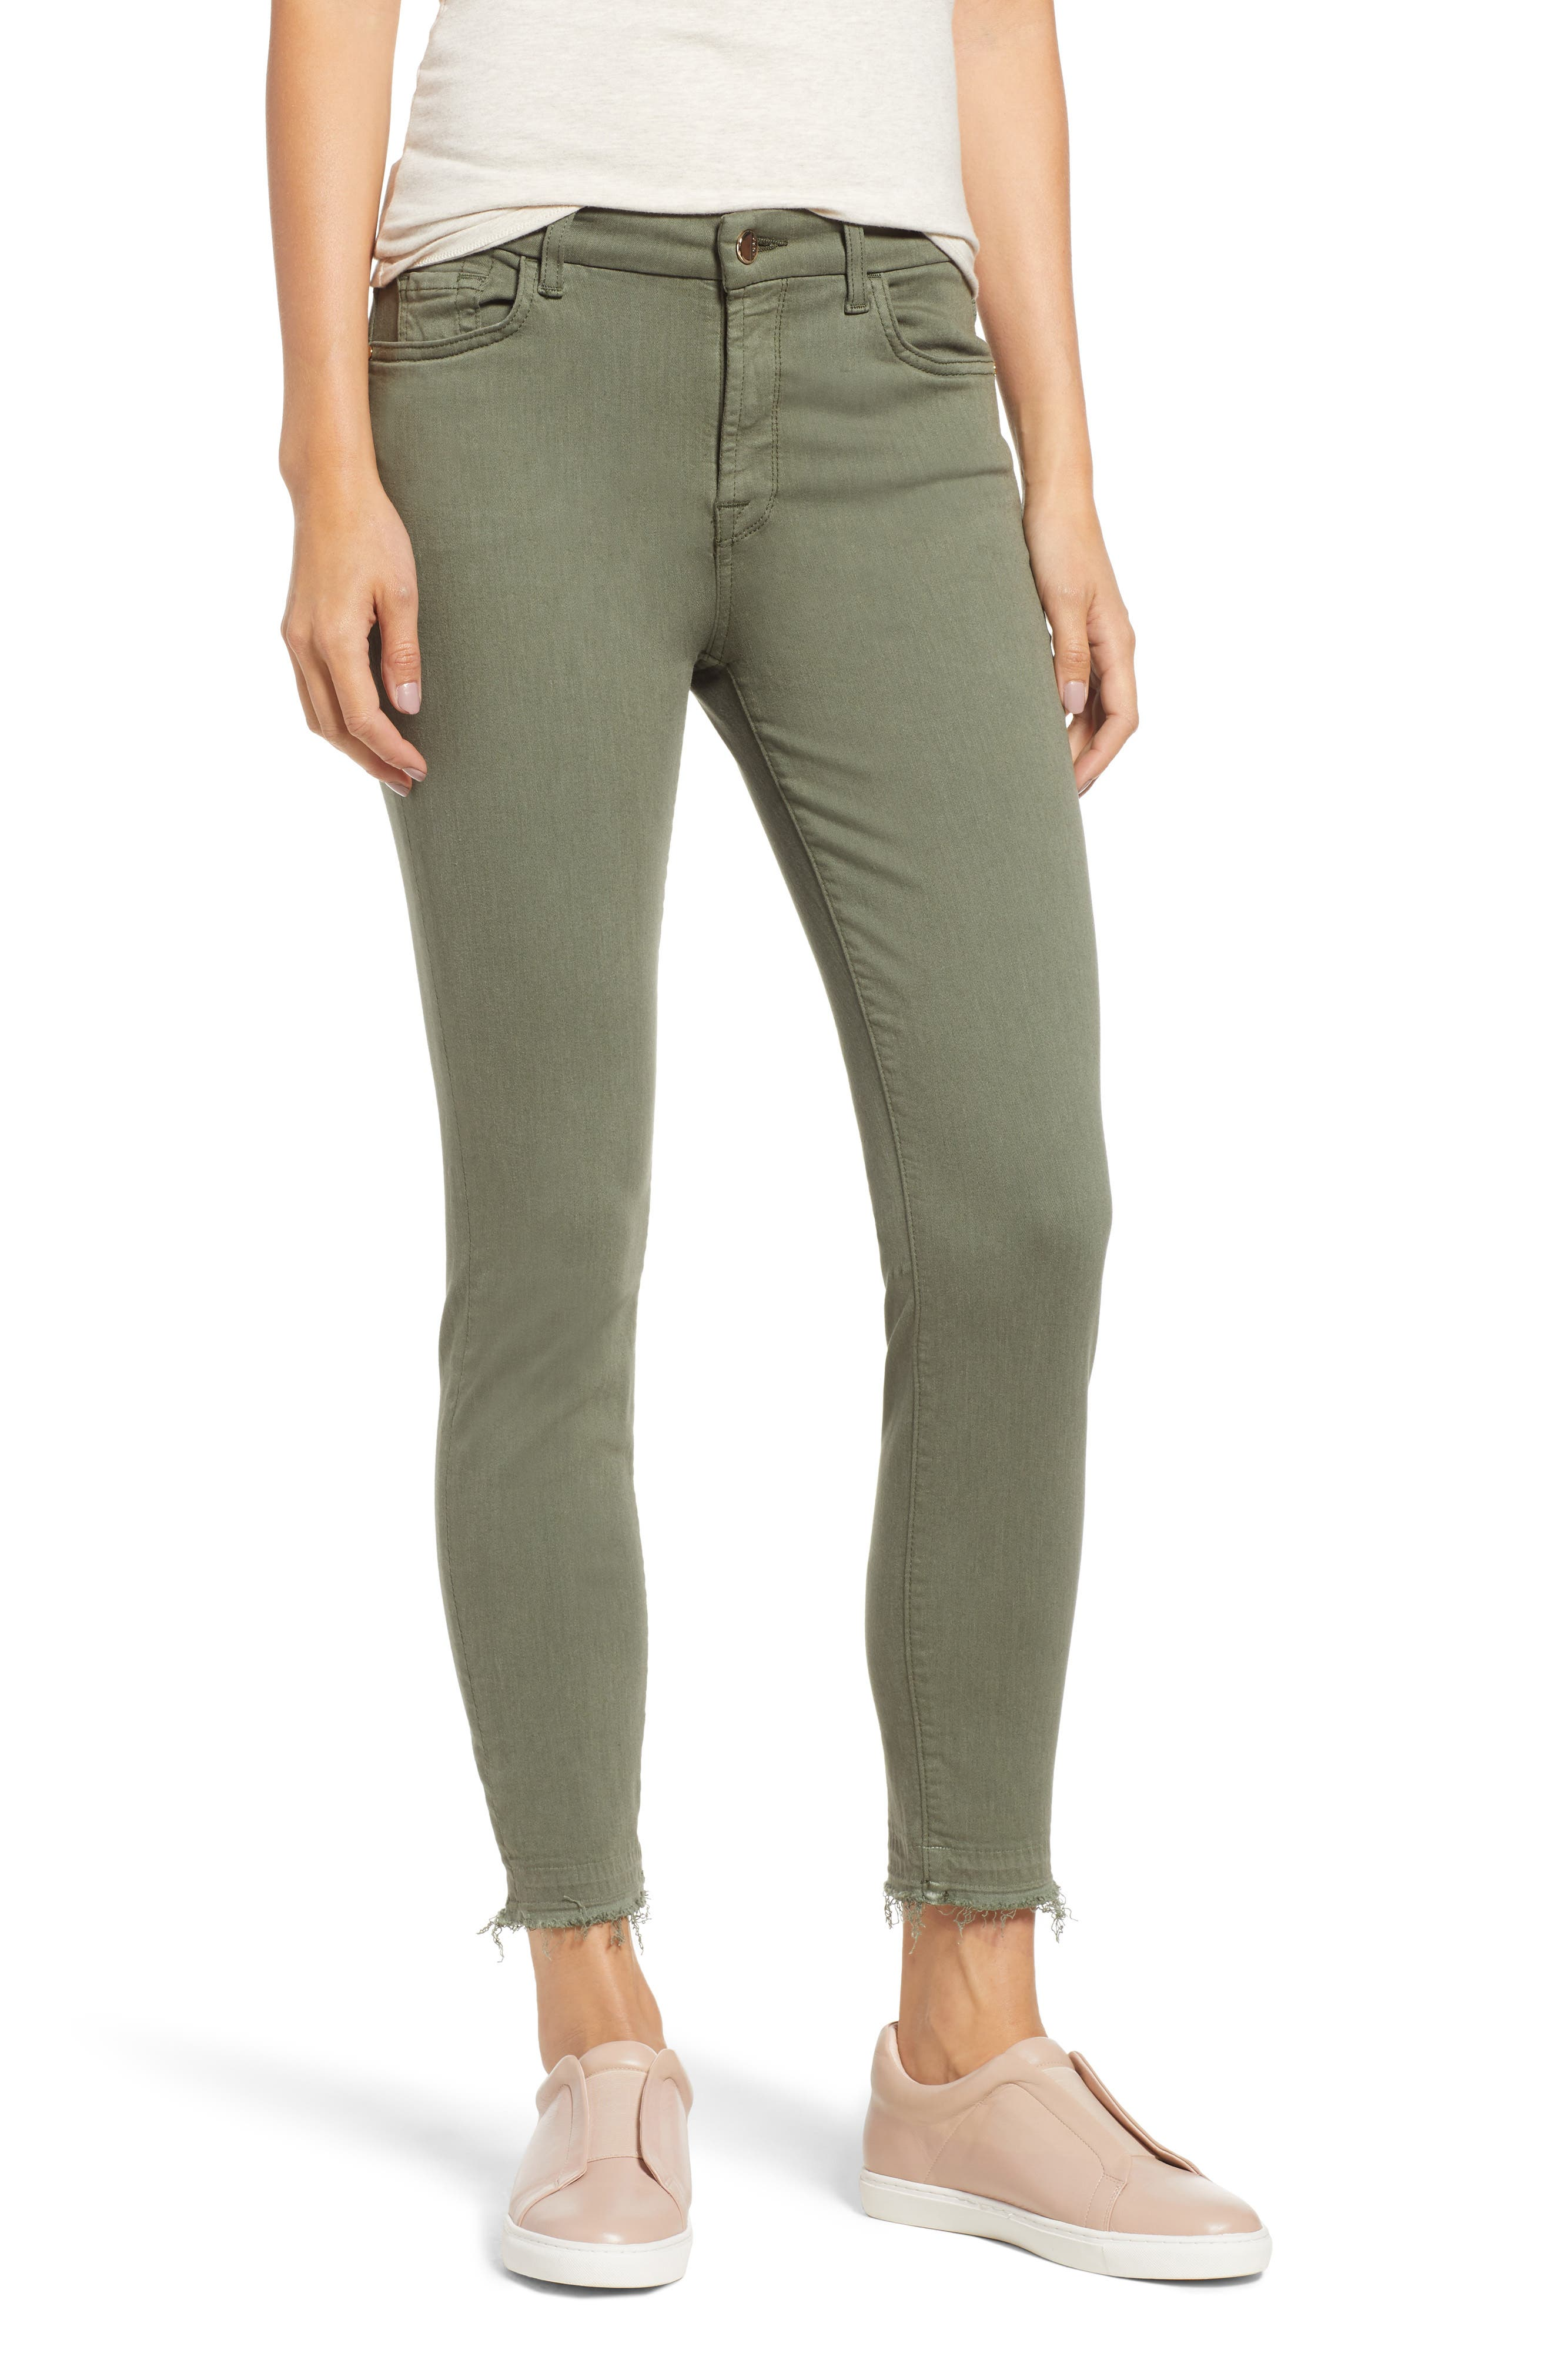 JEN7 BY 7 FOR ALL MANKIND Release Hem Colored Ankle Skinny Jeans, Main, color, WASHED FATIGUE